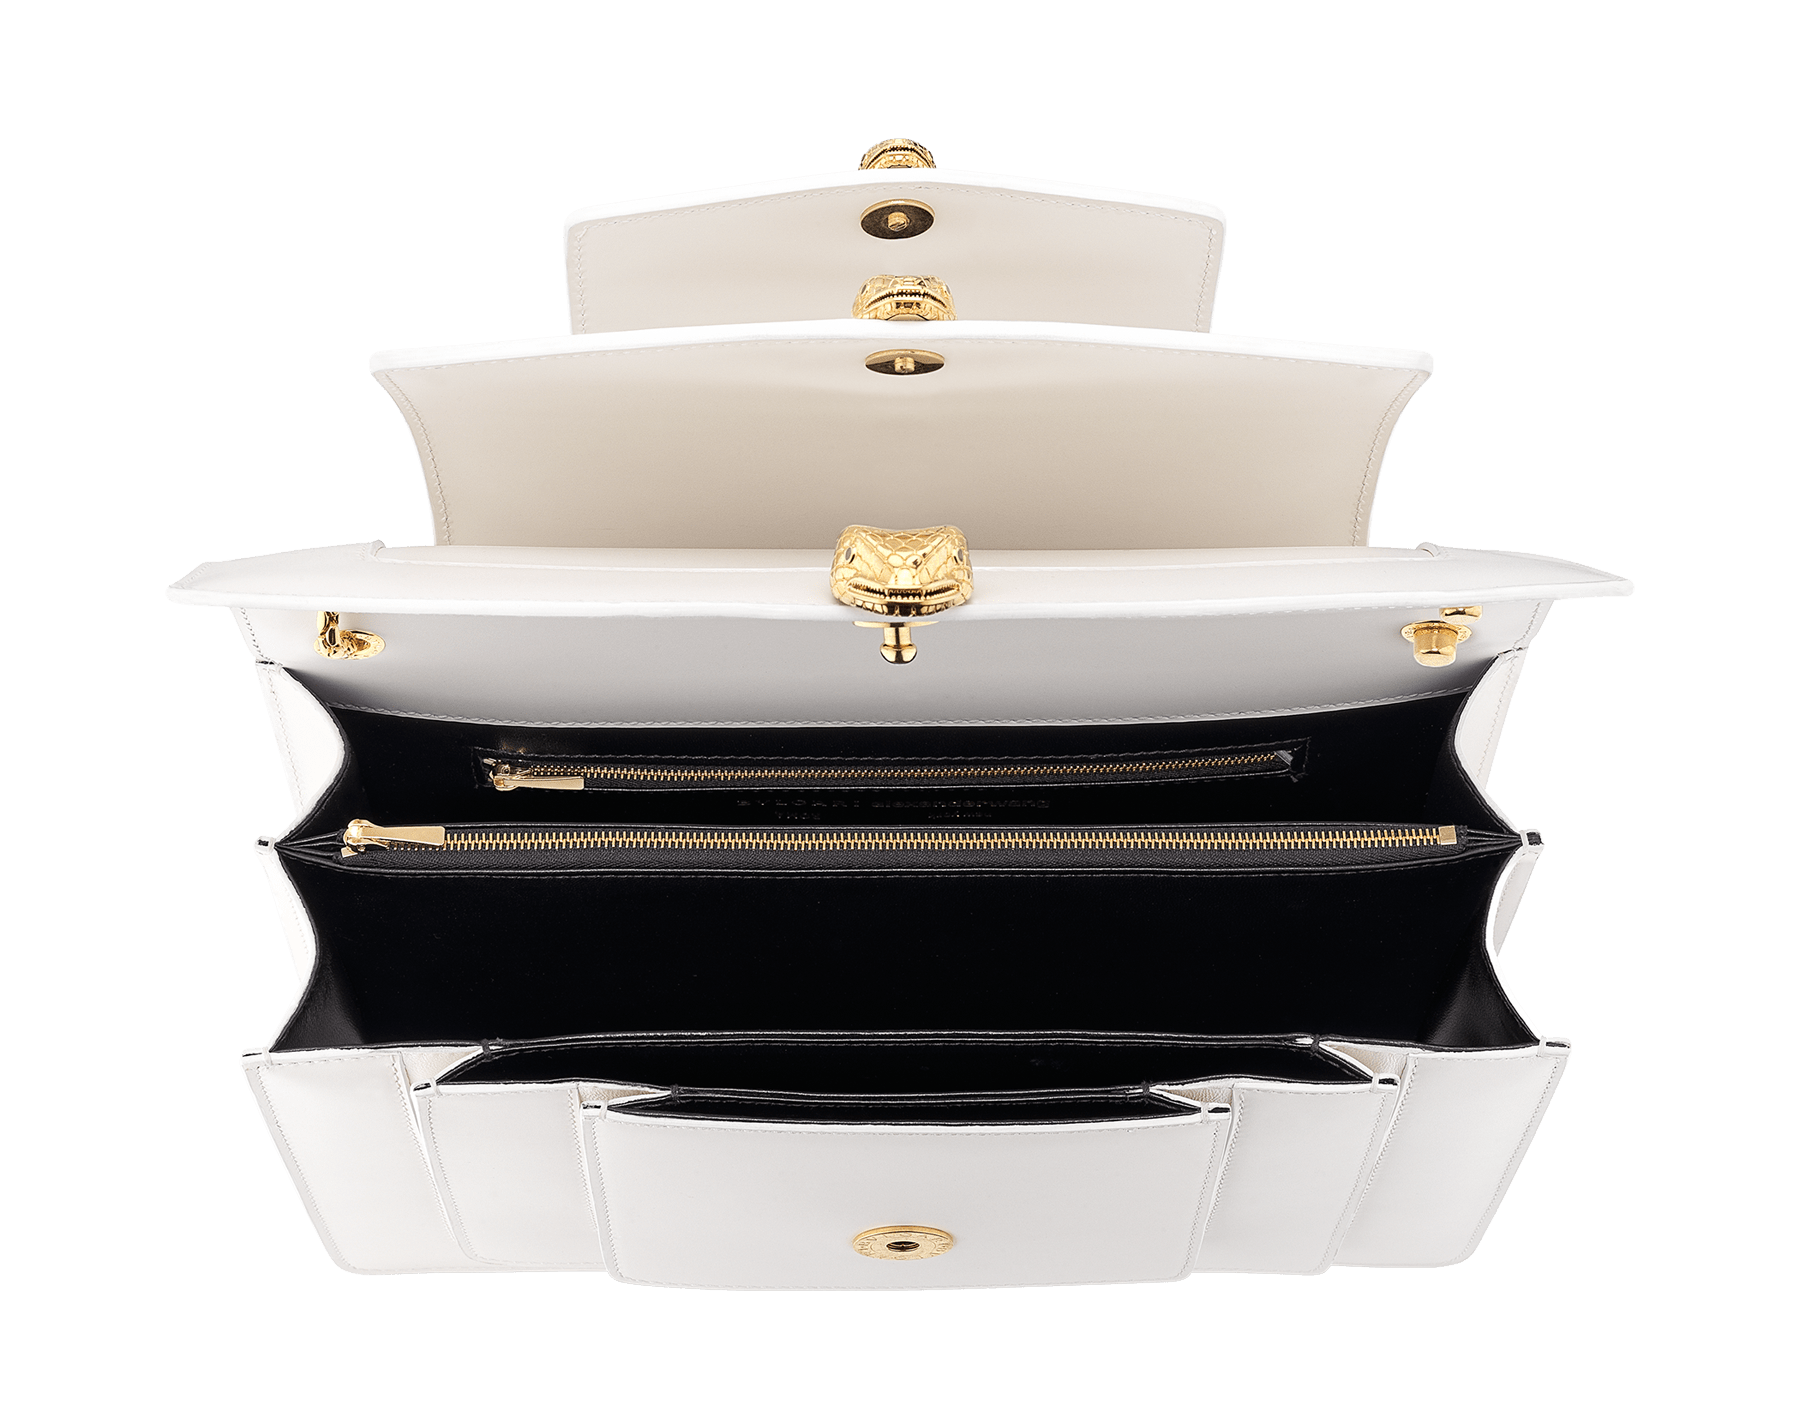 Alexander Wang x Bvlgari Triplette shoulder bag in smooth white calf leather. New triple Serpenti head closure in antique gold plated brass with tempting red enamel eyes. Limited edition. 288744 image 4